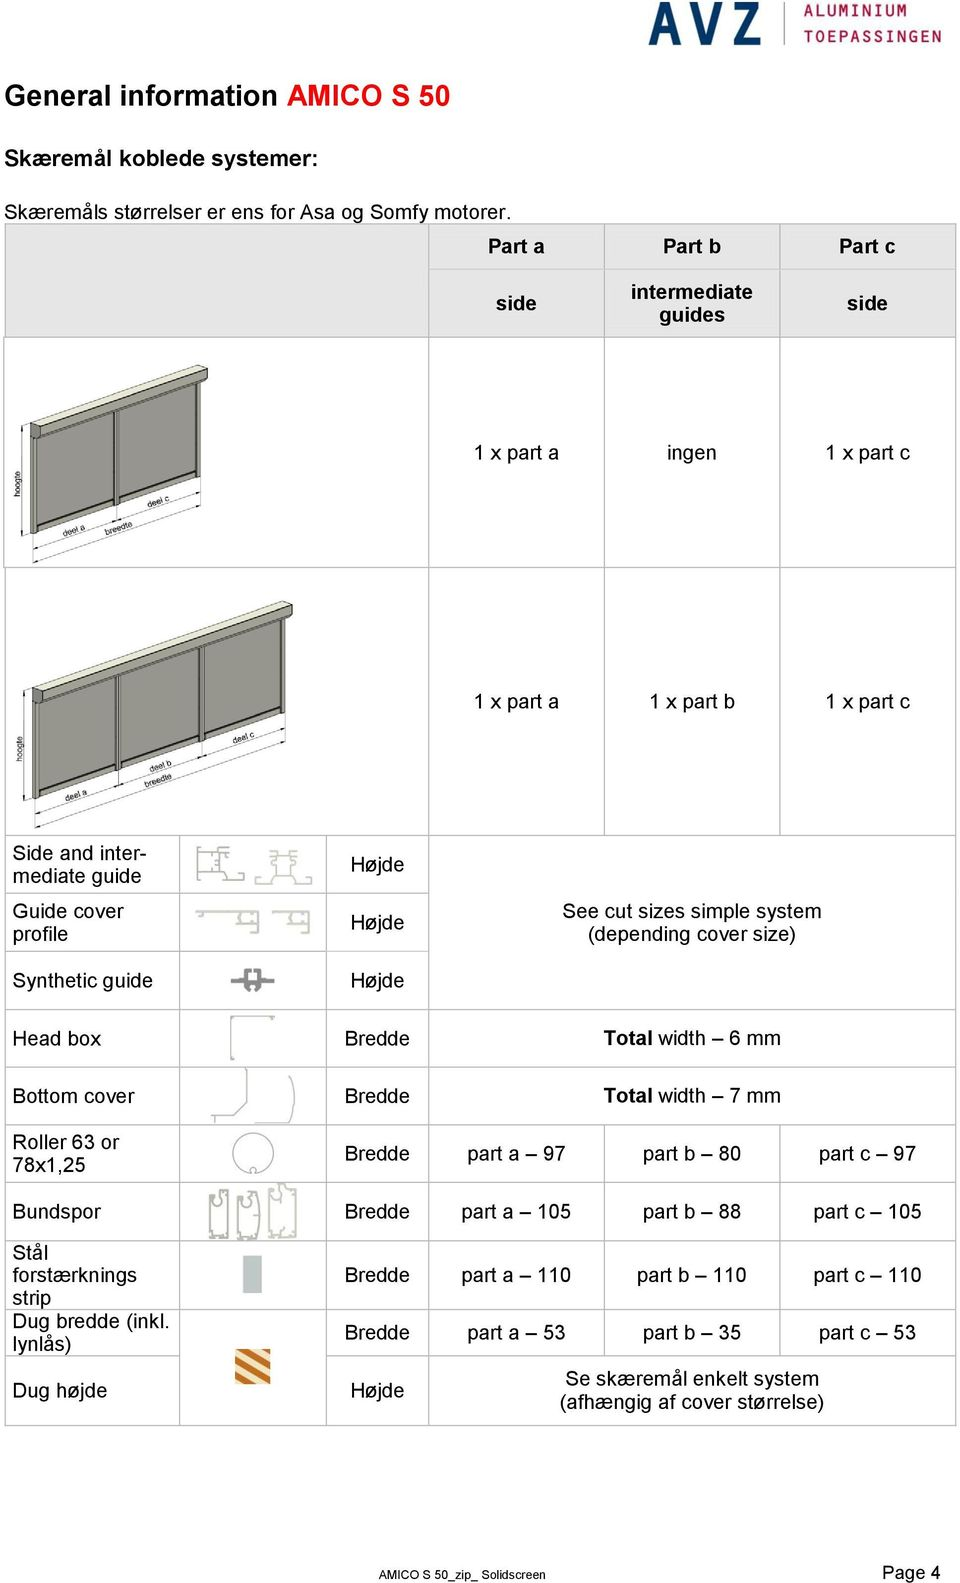 Højde See cut sizes simple system (depending cover size) Head box Bredde Total width 6 mm Bottom cover Bredde Total width 7 mm Roller 63 or 78x1,25 Bredde part a 97 part b 80 part c 97